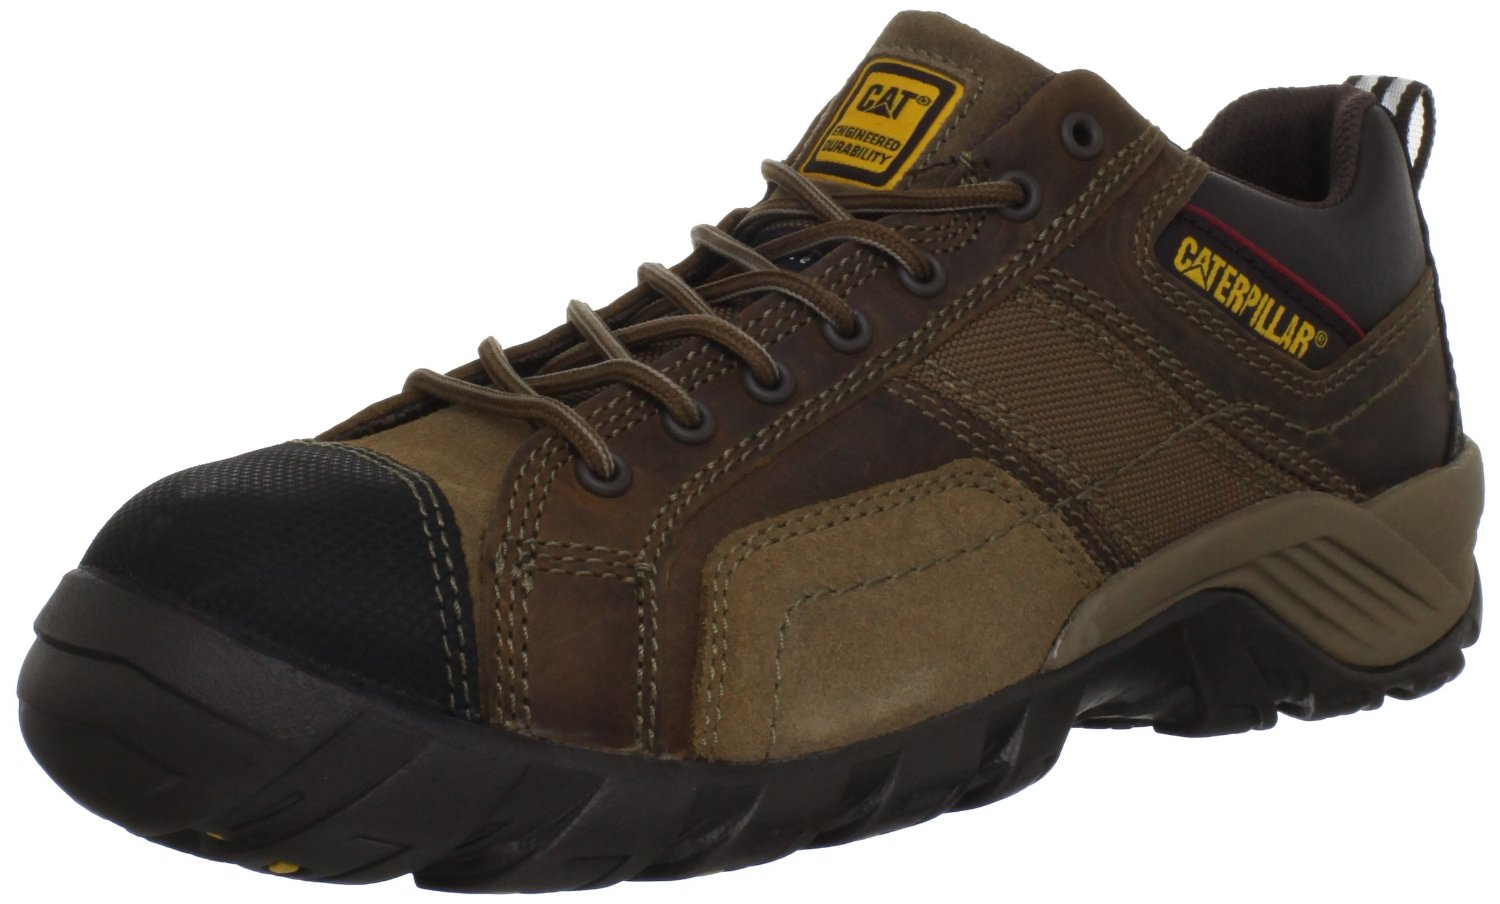 Caterpillar Mens Caterpillar Argon Work Safety Shoes Composite Toe Oxford Leather Medium (D,M) Dark Brown P89957 at Sears.com